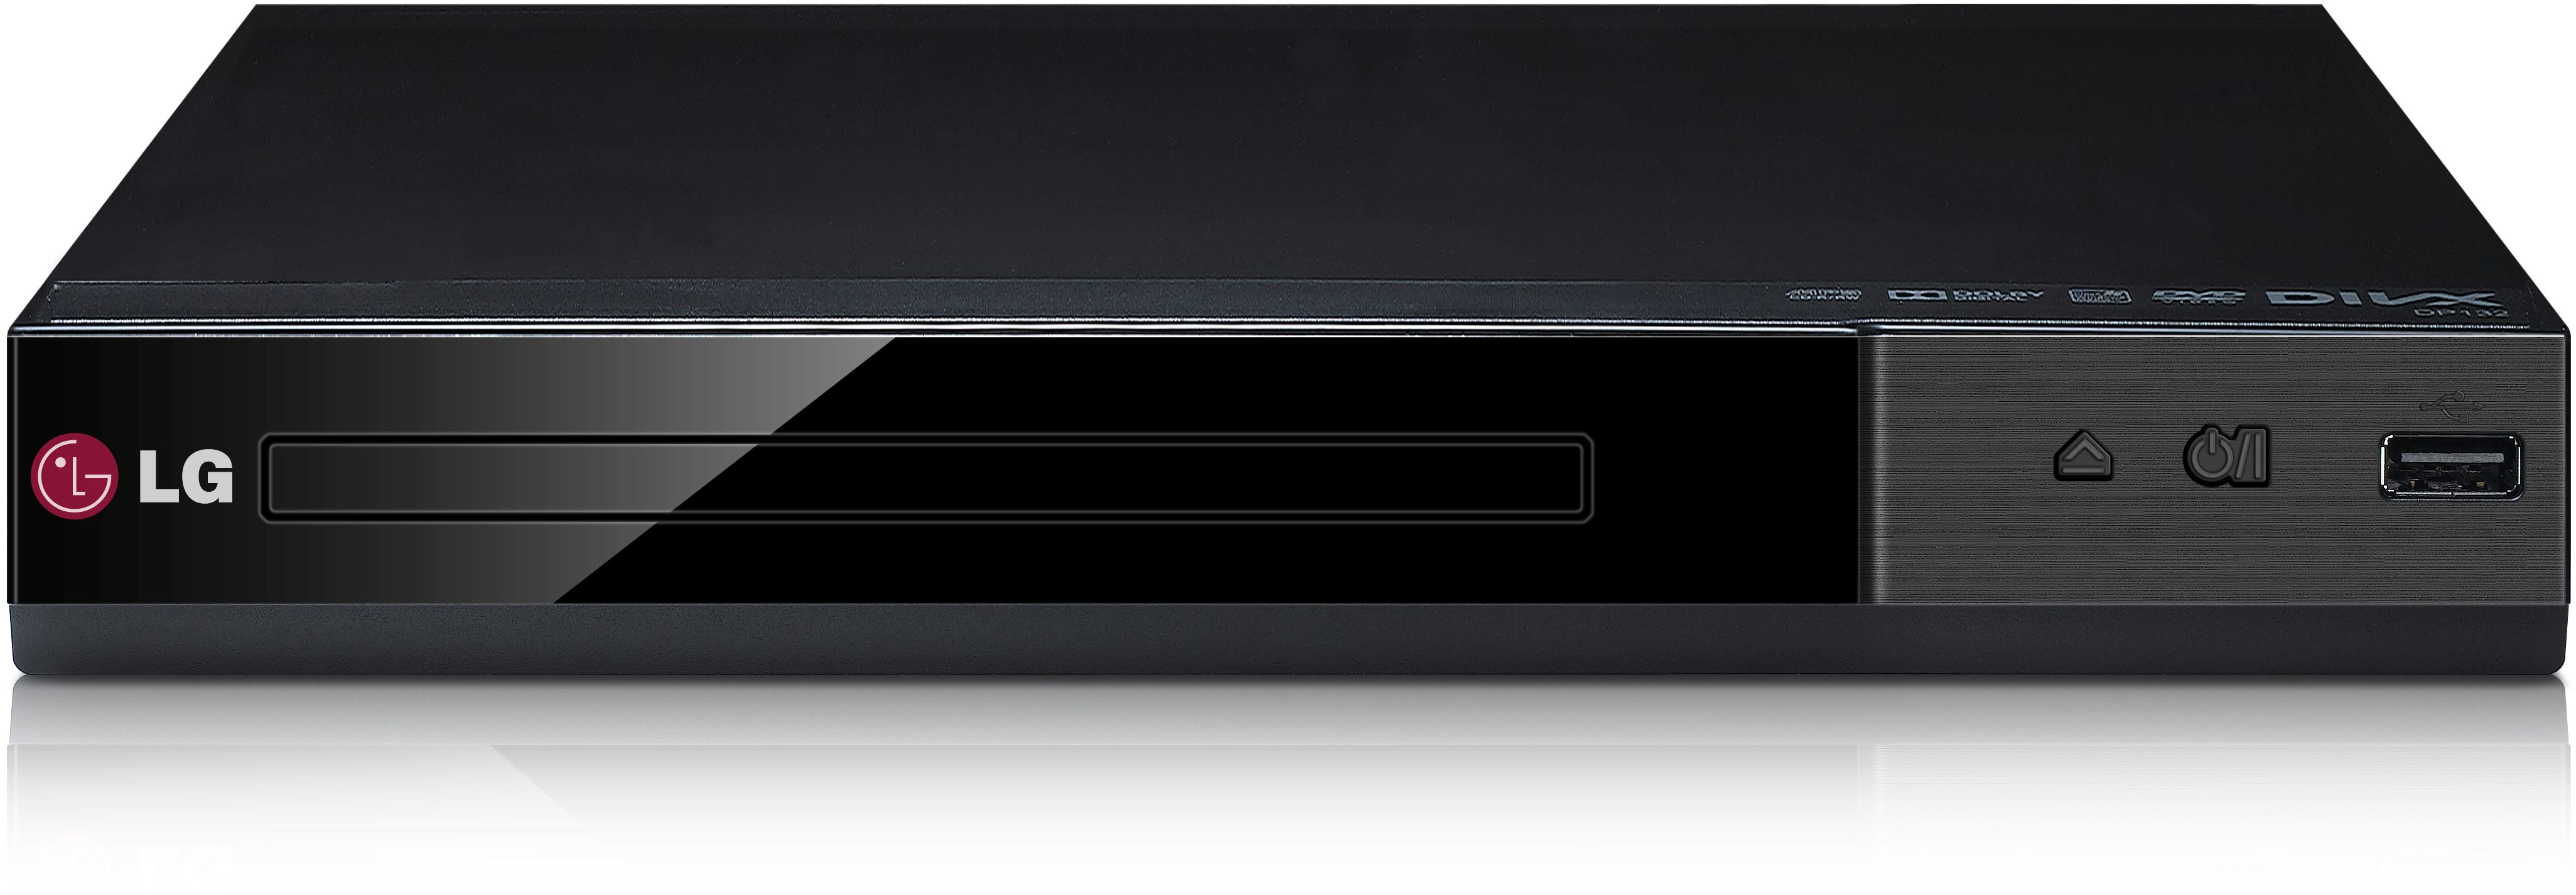 LG DVD Player And Direct Recorder-DP132